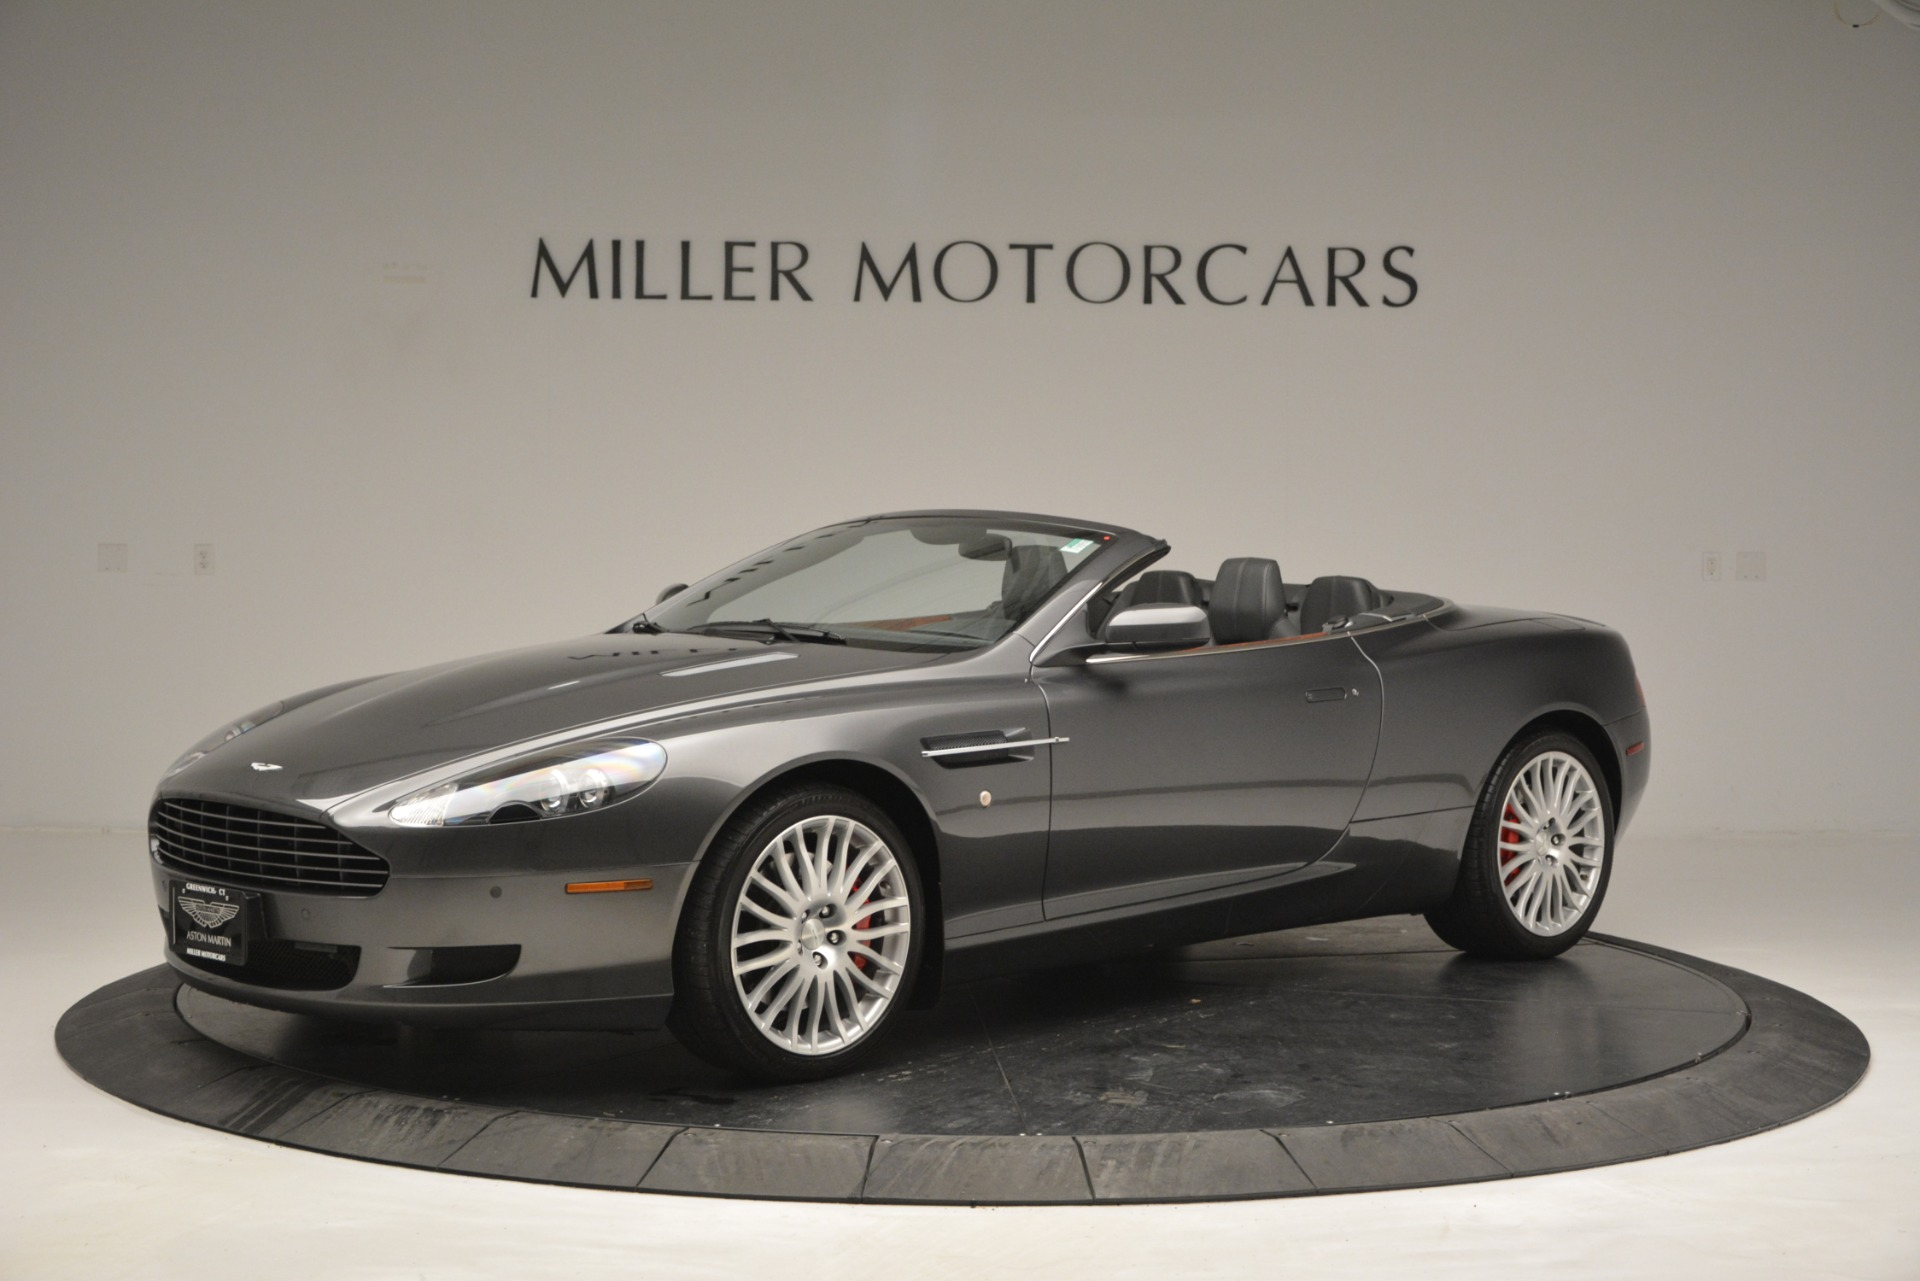 Used 2009 Aston Martin DB9 Convertible for sale Sold at Maserati of Westport in Westport CT 06880 1